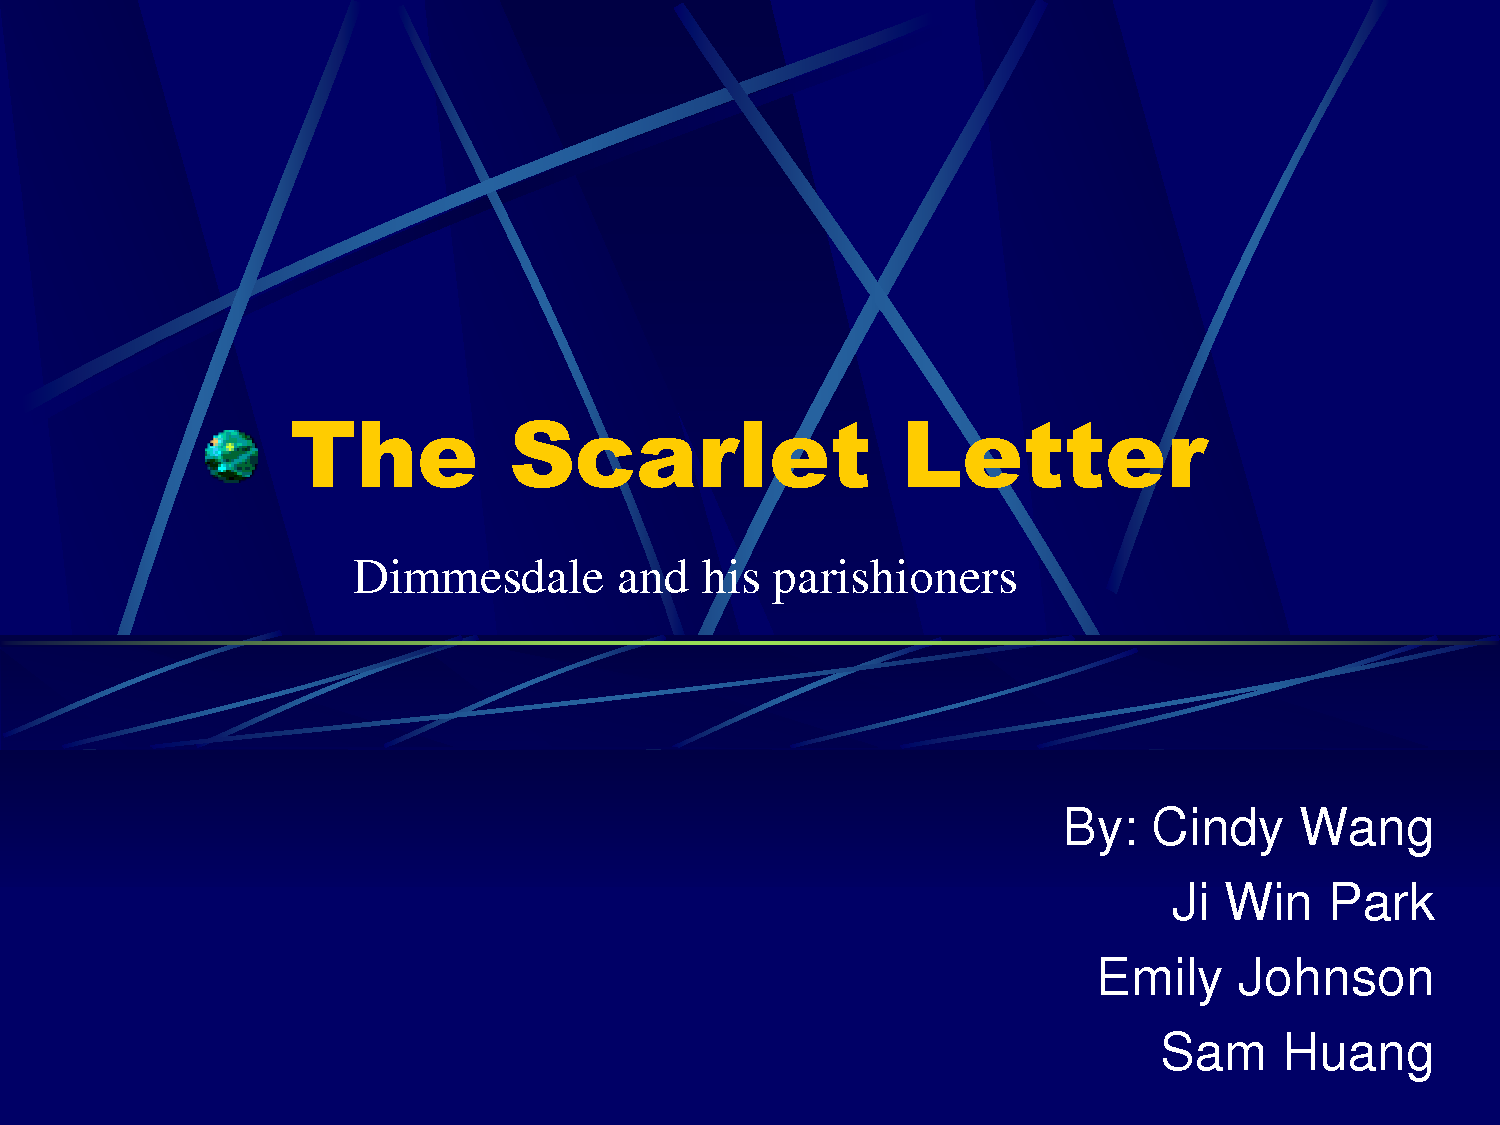 the scarlet letter quotes the scarlet letter dimmesdale quotes quotesgram 25235